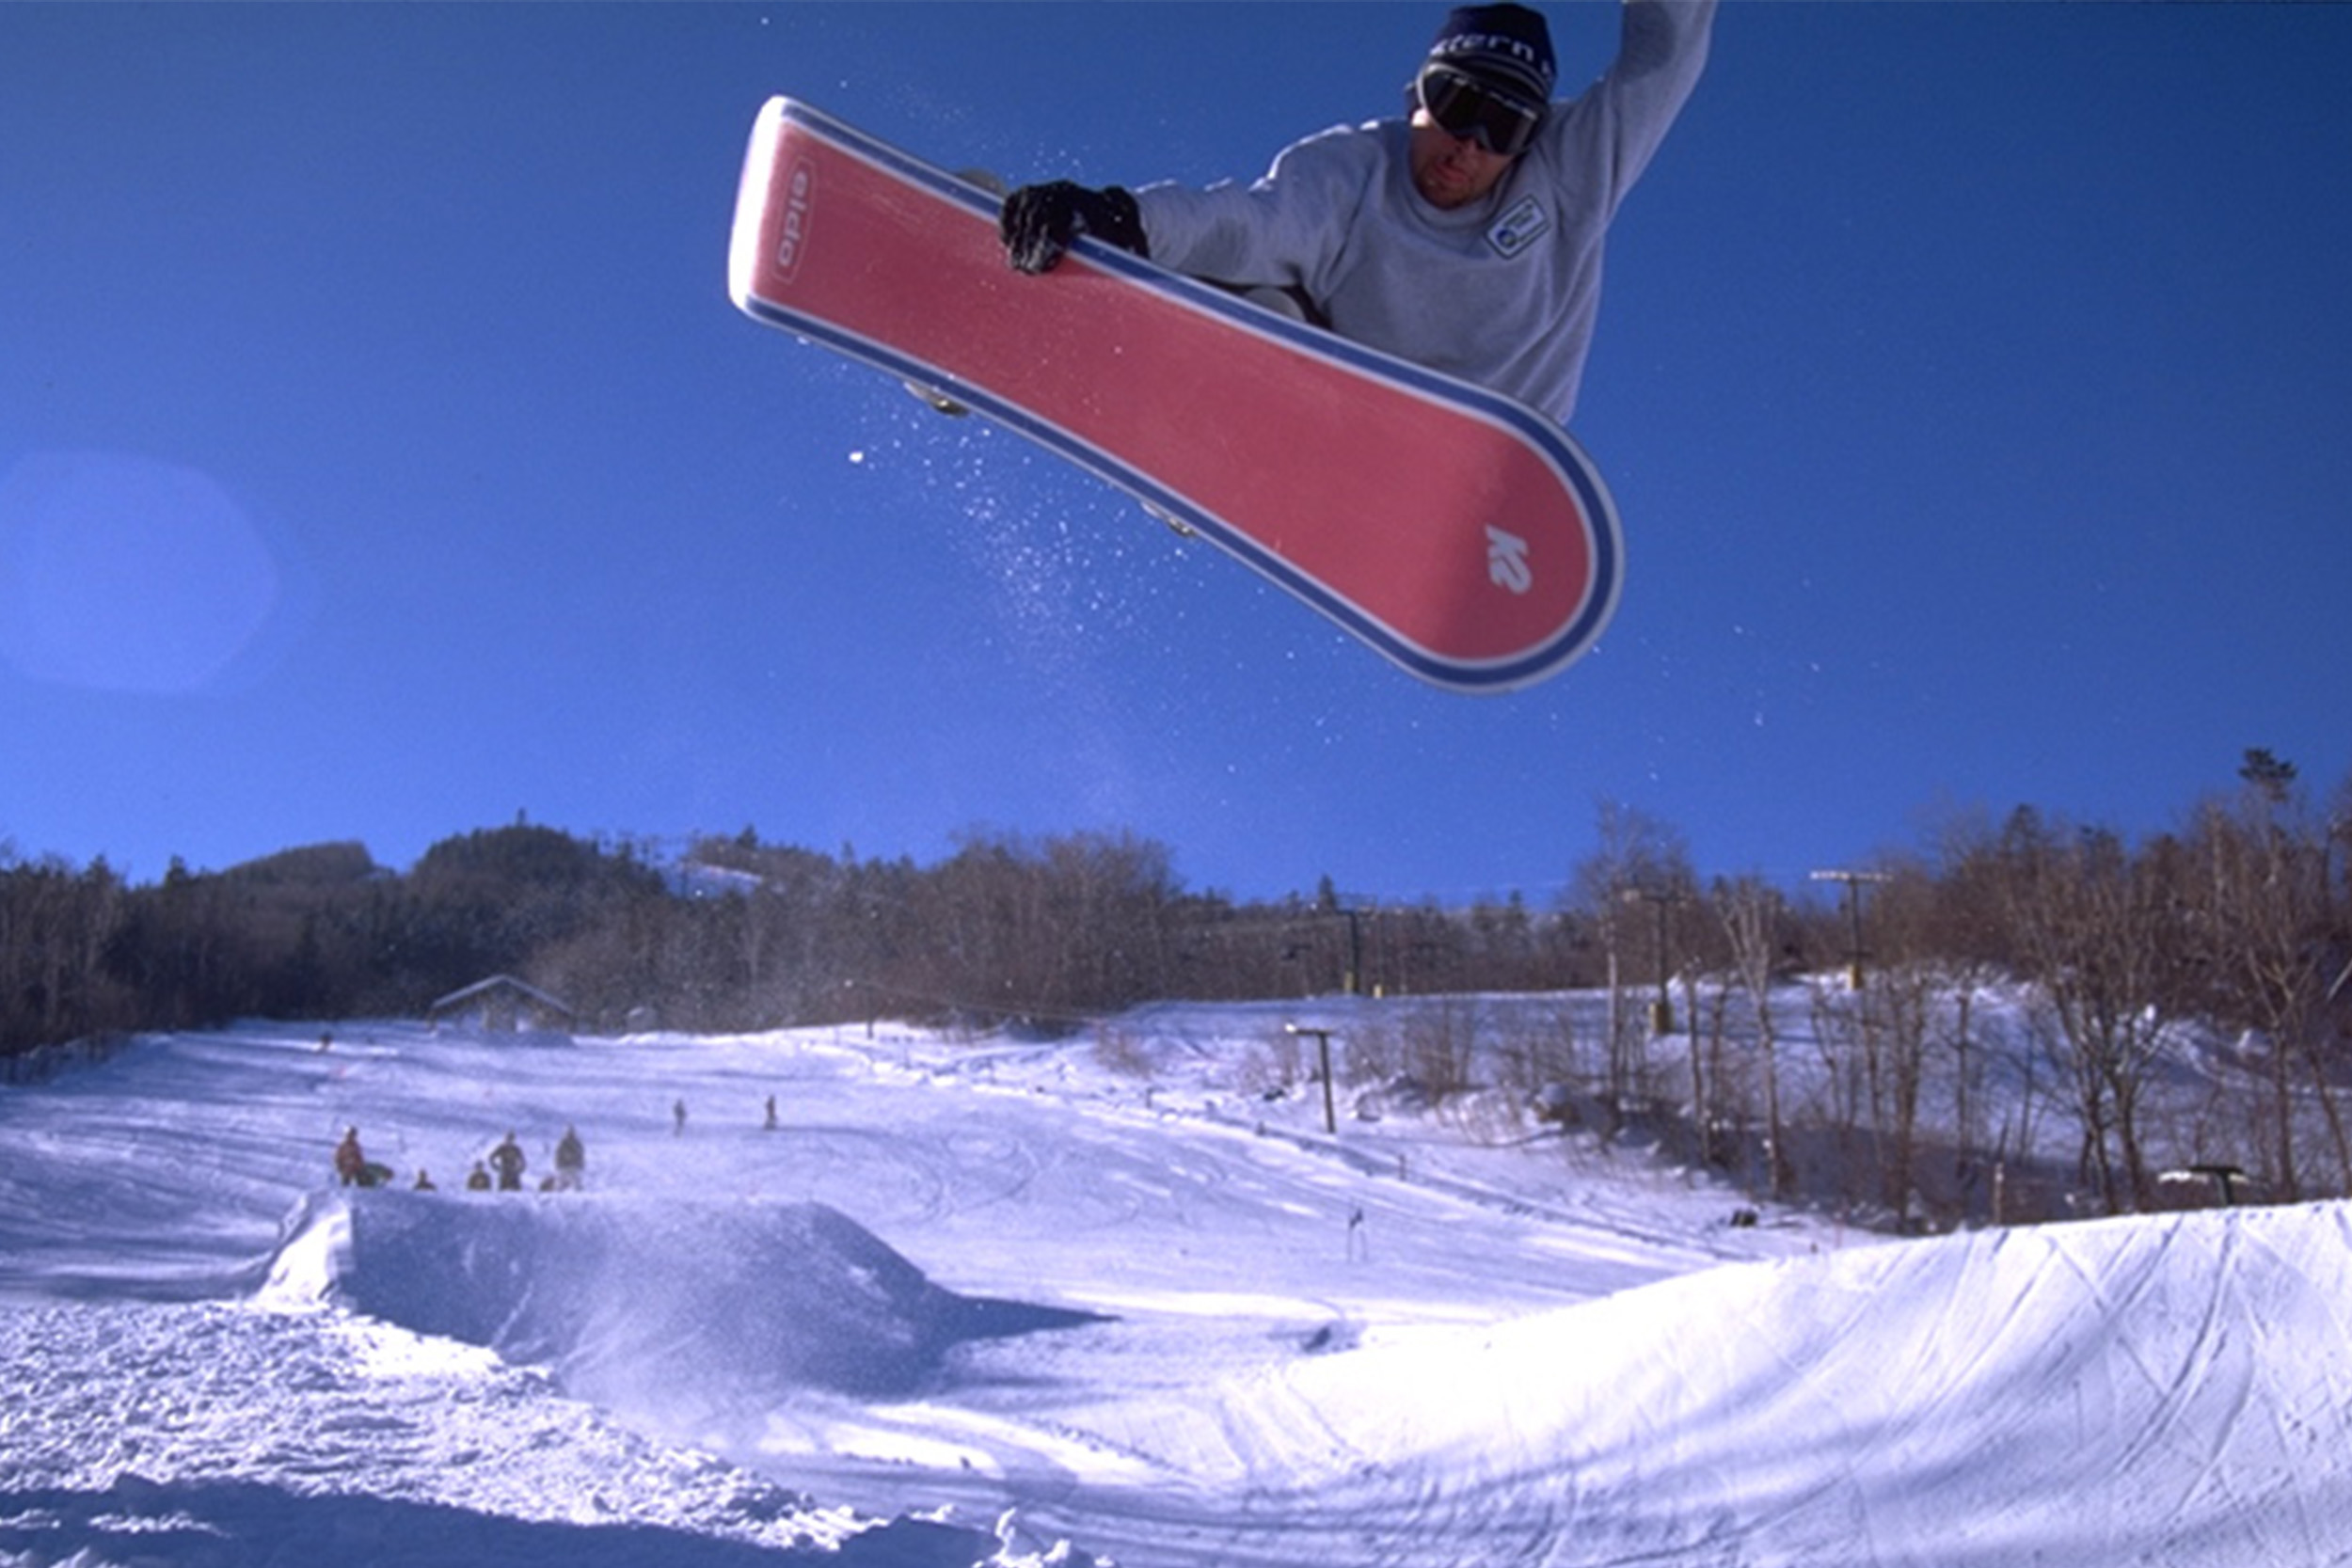 The first snowboard park in NH